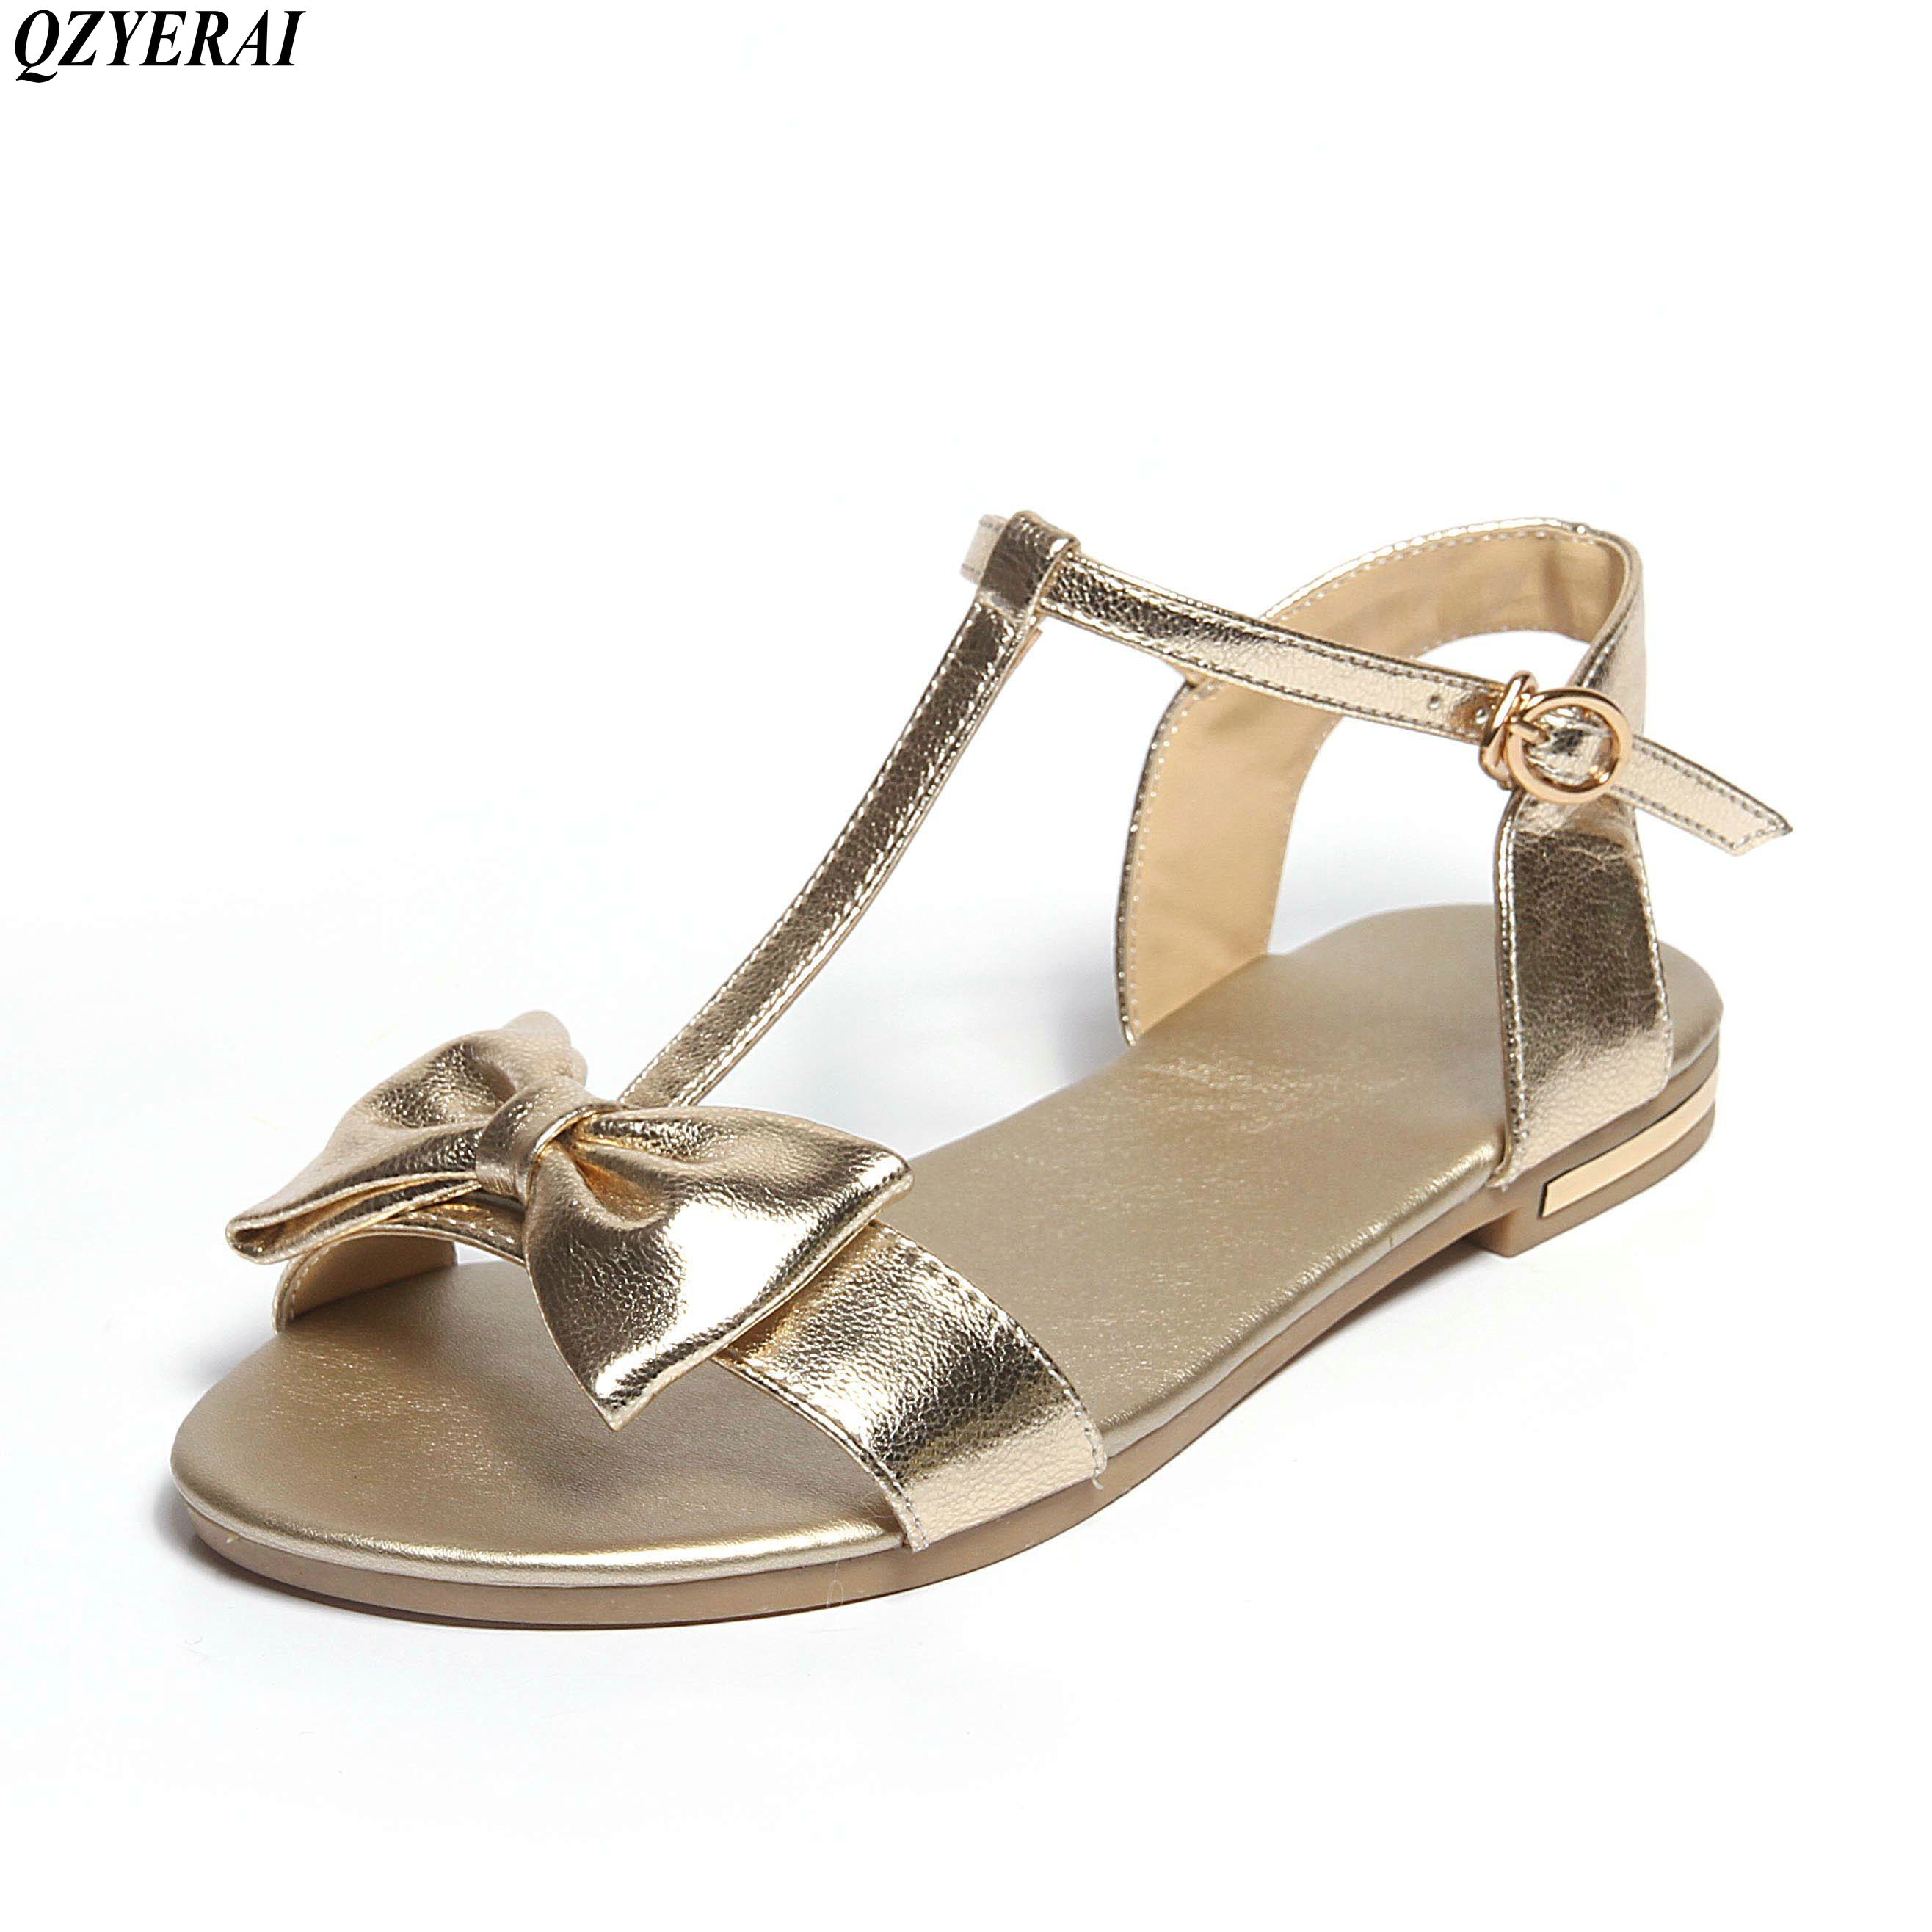 QZYERAI 2018 new style summer womens sandals 100% cowhide comfortable wear-resisting cow bar womens shoes sandals sizes 34-43